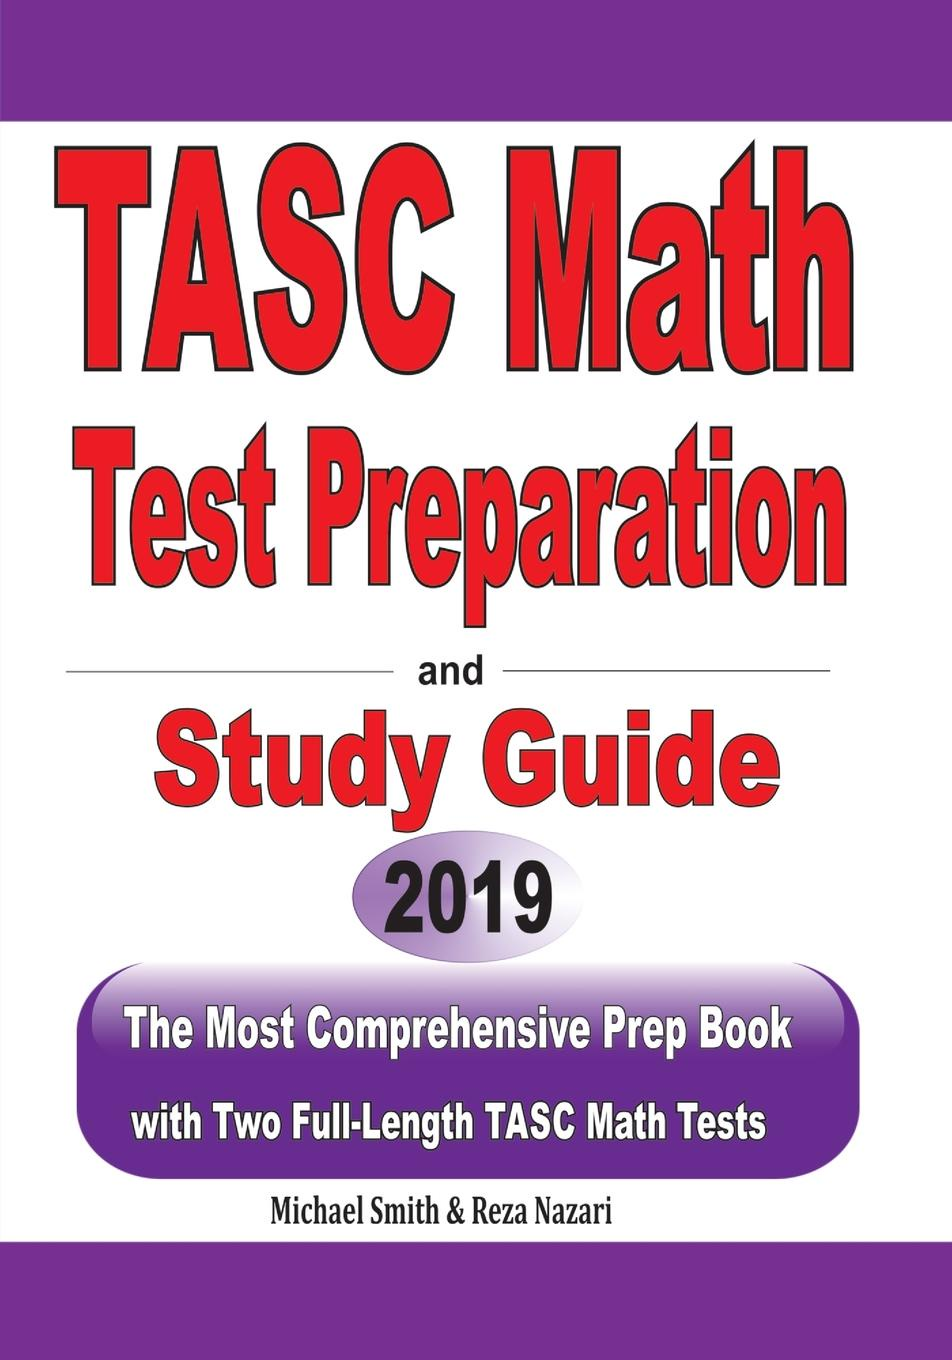 Michael Smith TASC Math Test Preparation and study guide. The Most Comprehensive Prep Book with Two Full-Length TASC Math Tests